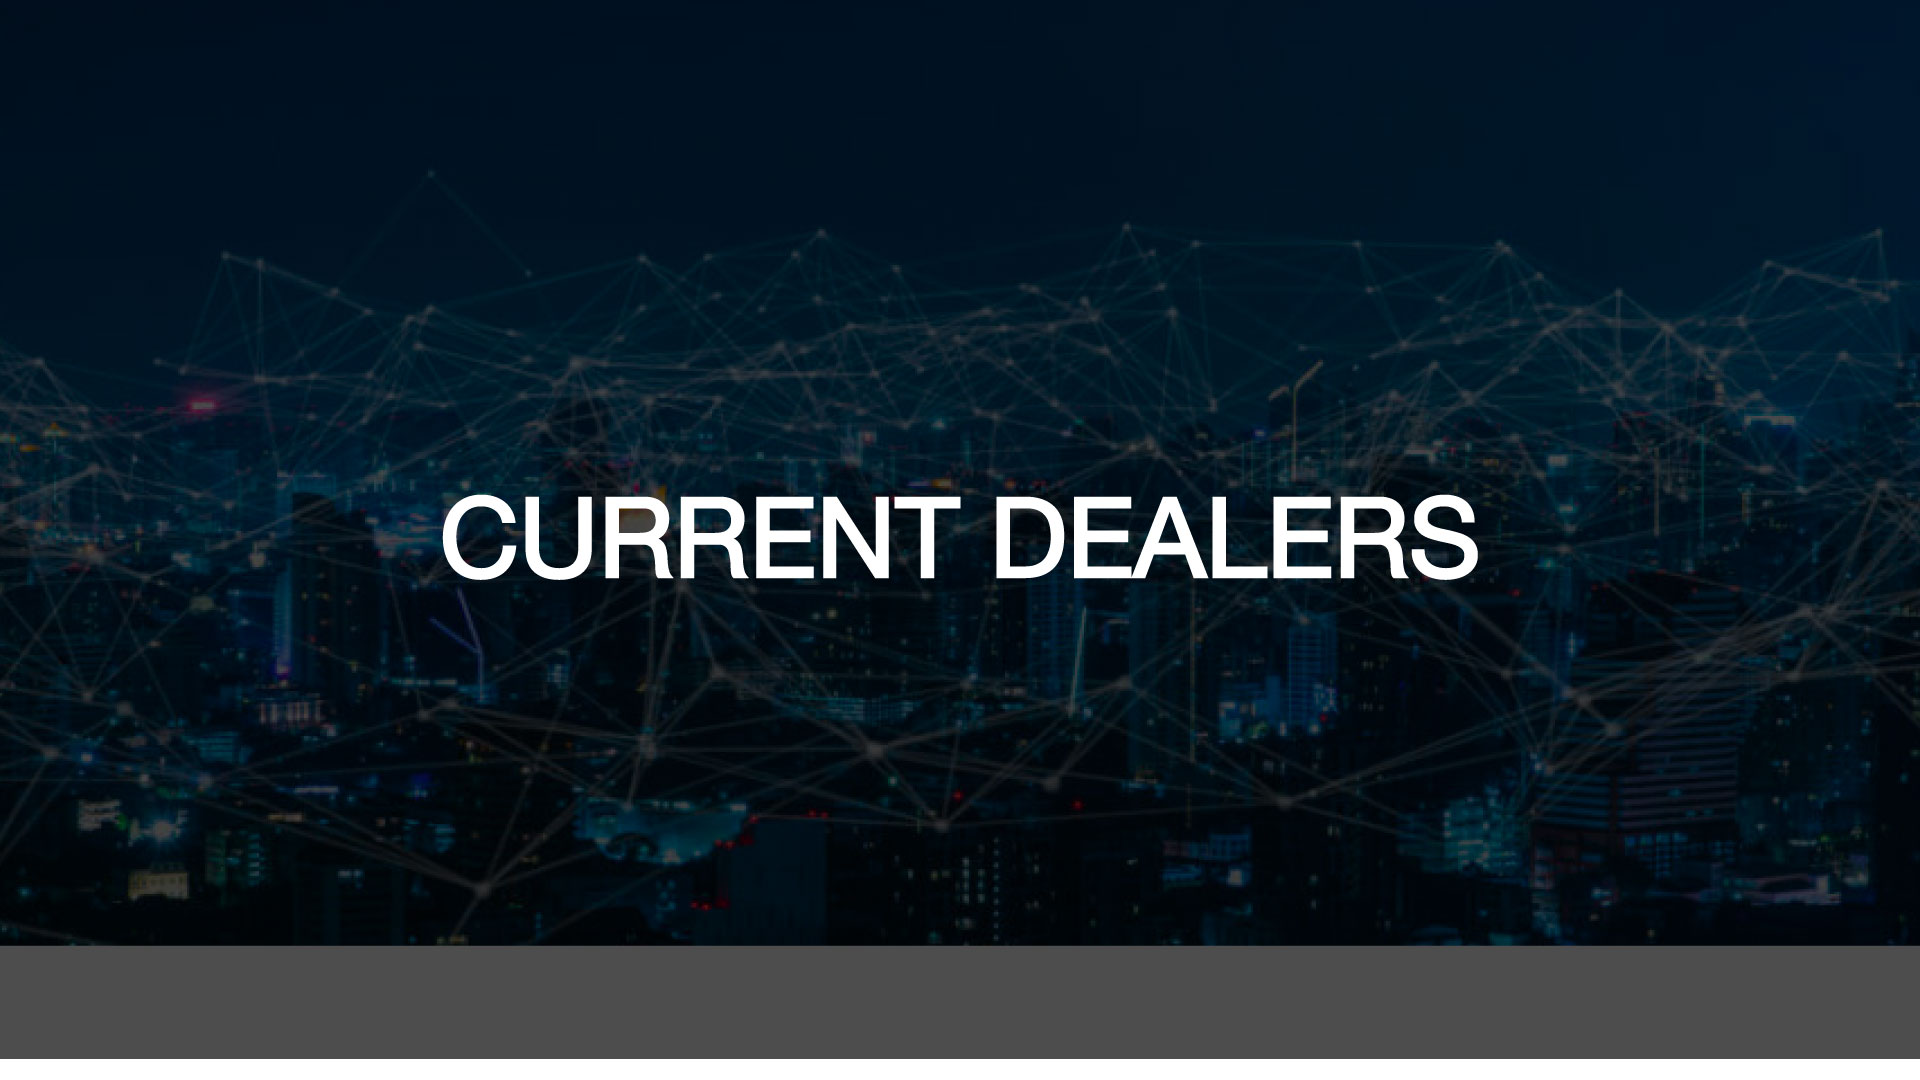 CURRENT-DEALERS-BANNER